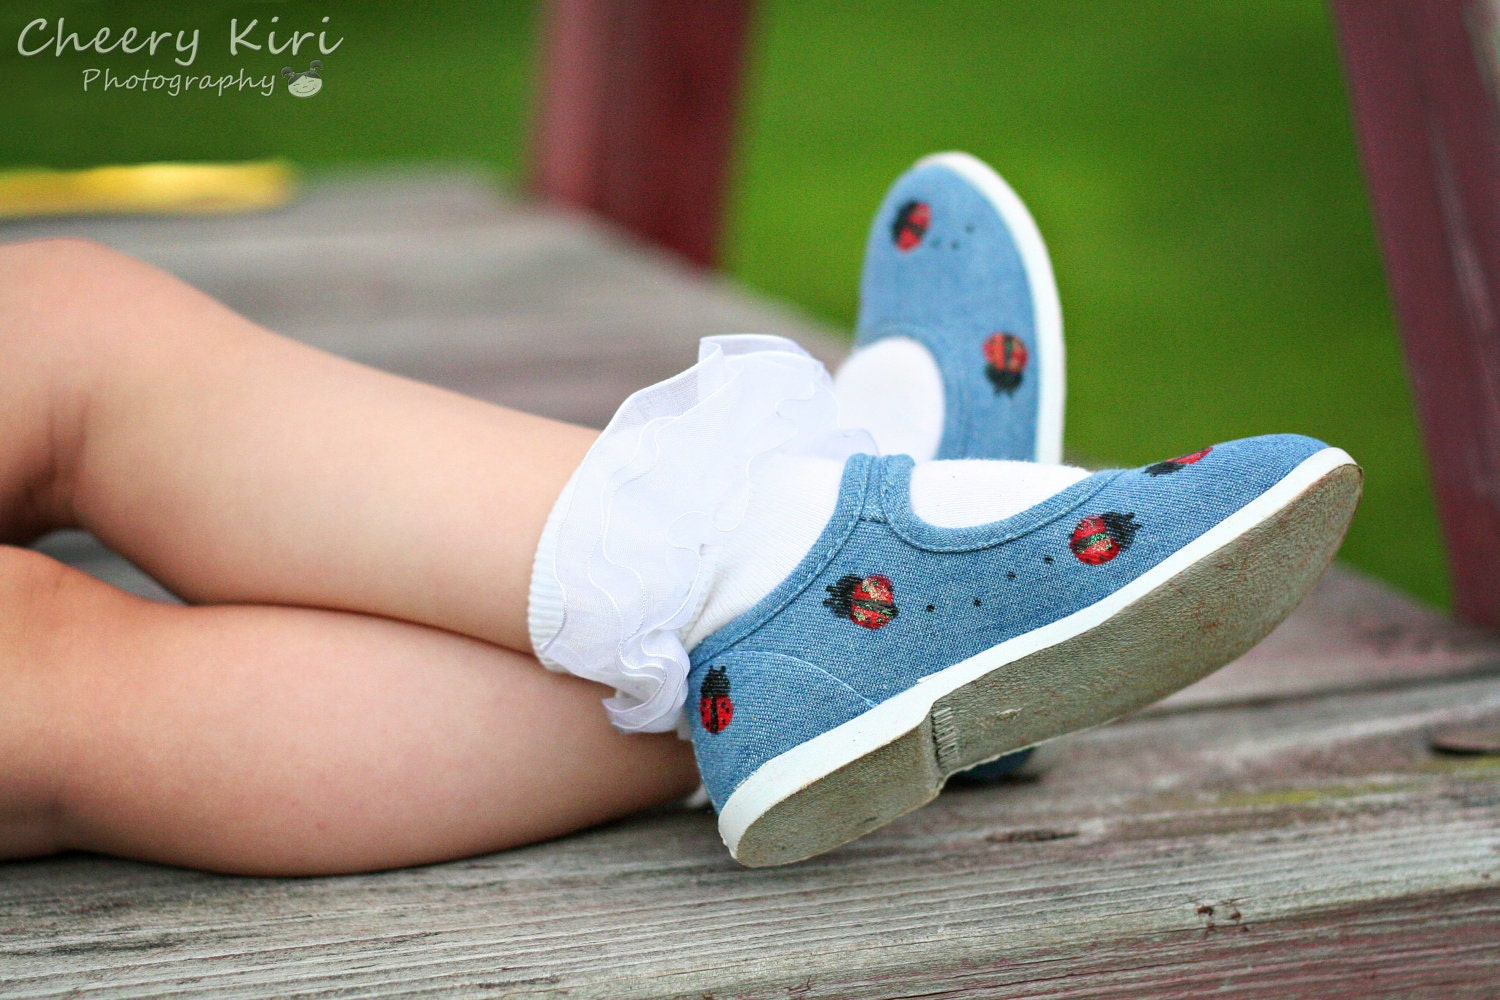 Children's Denim ladybug shoes- Hand painted sparkley red ladybugs on denim maryjane shoes for girls, baby or toddler children's shoes - Snanimals